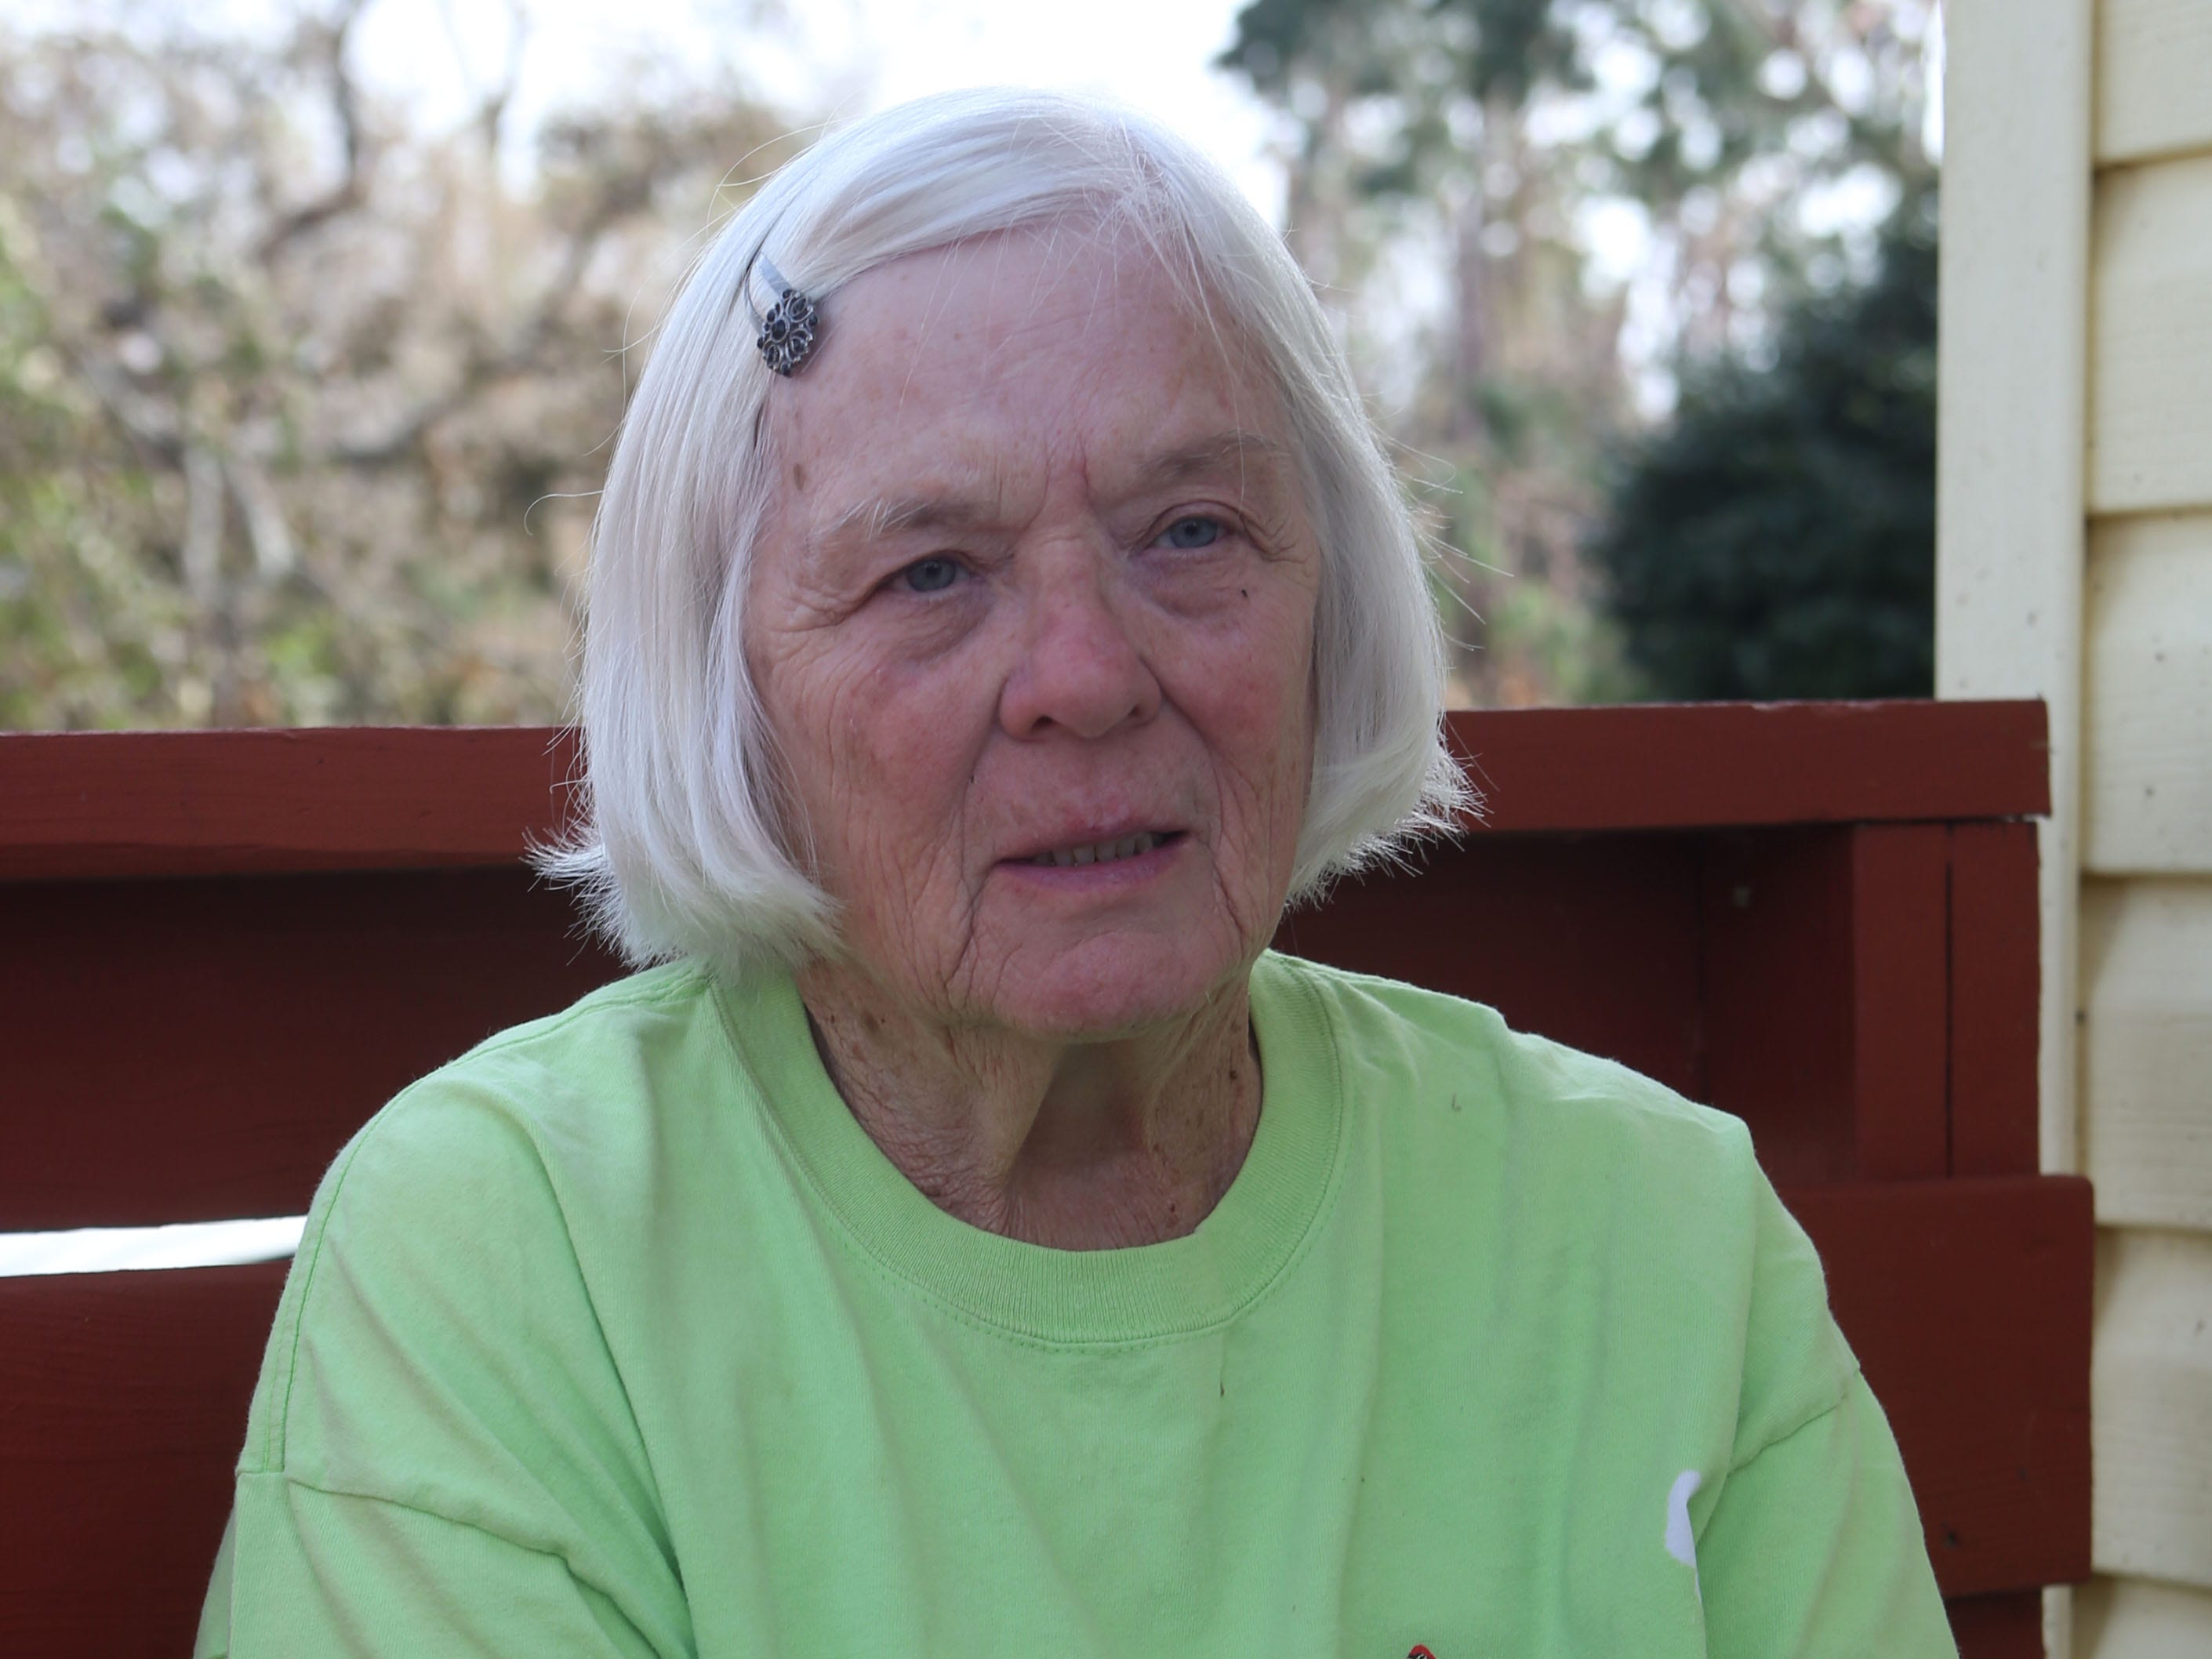 Elizabeth Radney, grandmother of Sarah Radney, an 11 year old girl who died during Hurricane Michael in Donalsonville, Ga., speaks about what took place during the hurricane on Thursday, Oct. 18, 2018.